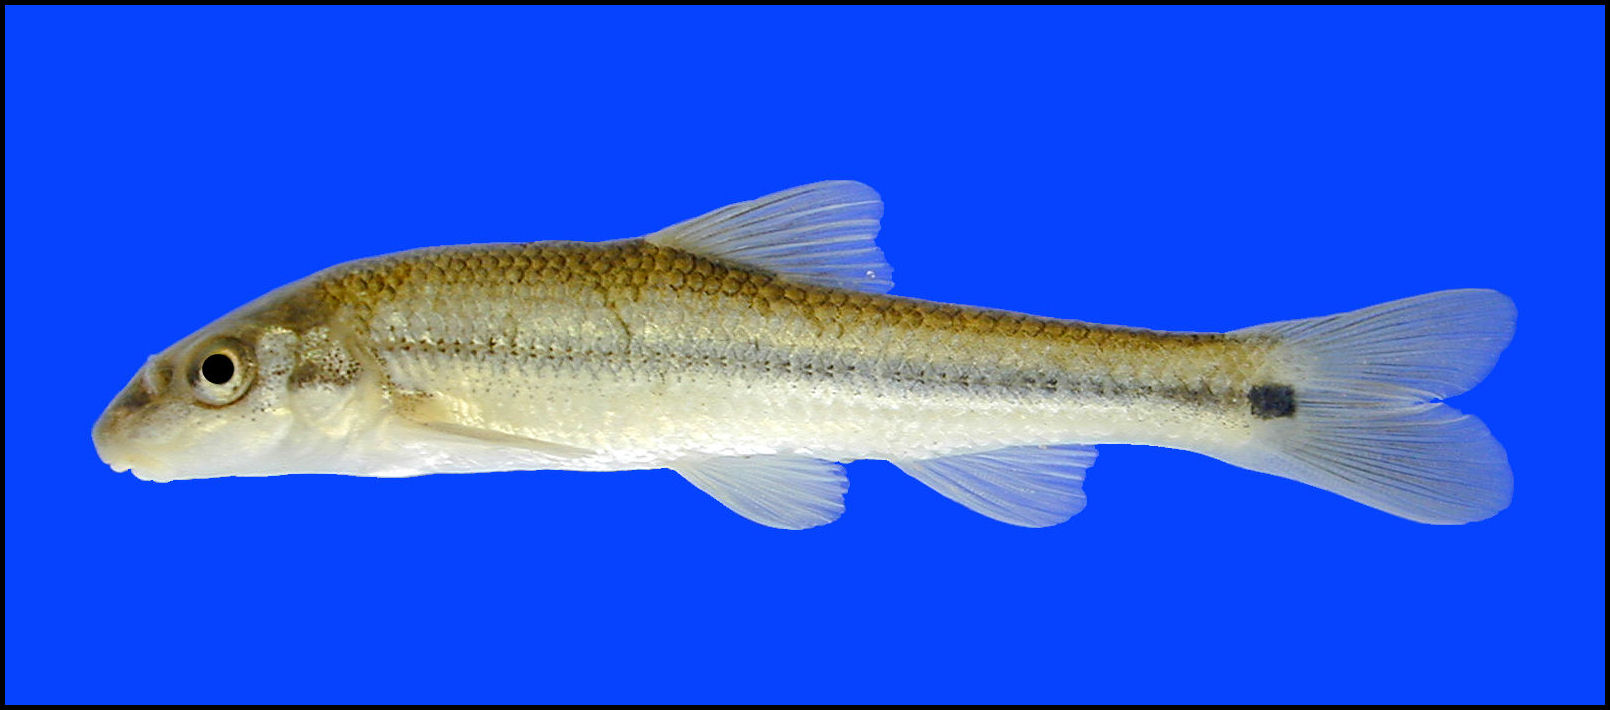 suckermouth minnow Phenacobius mirabilis